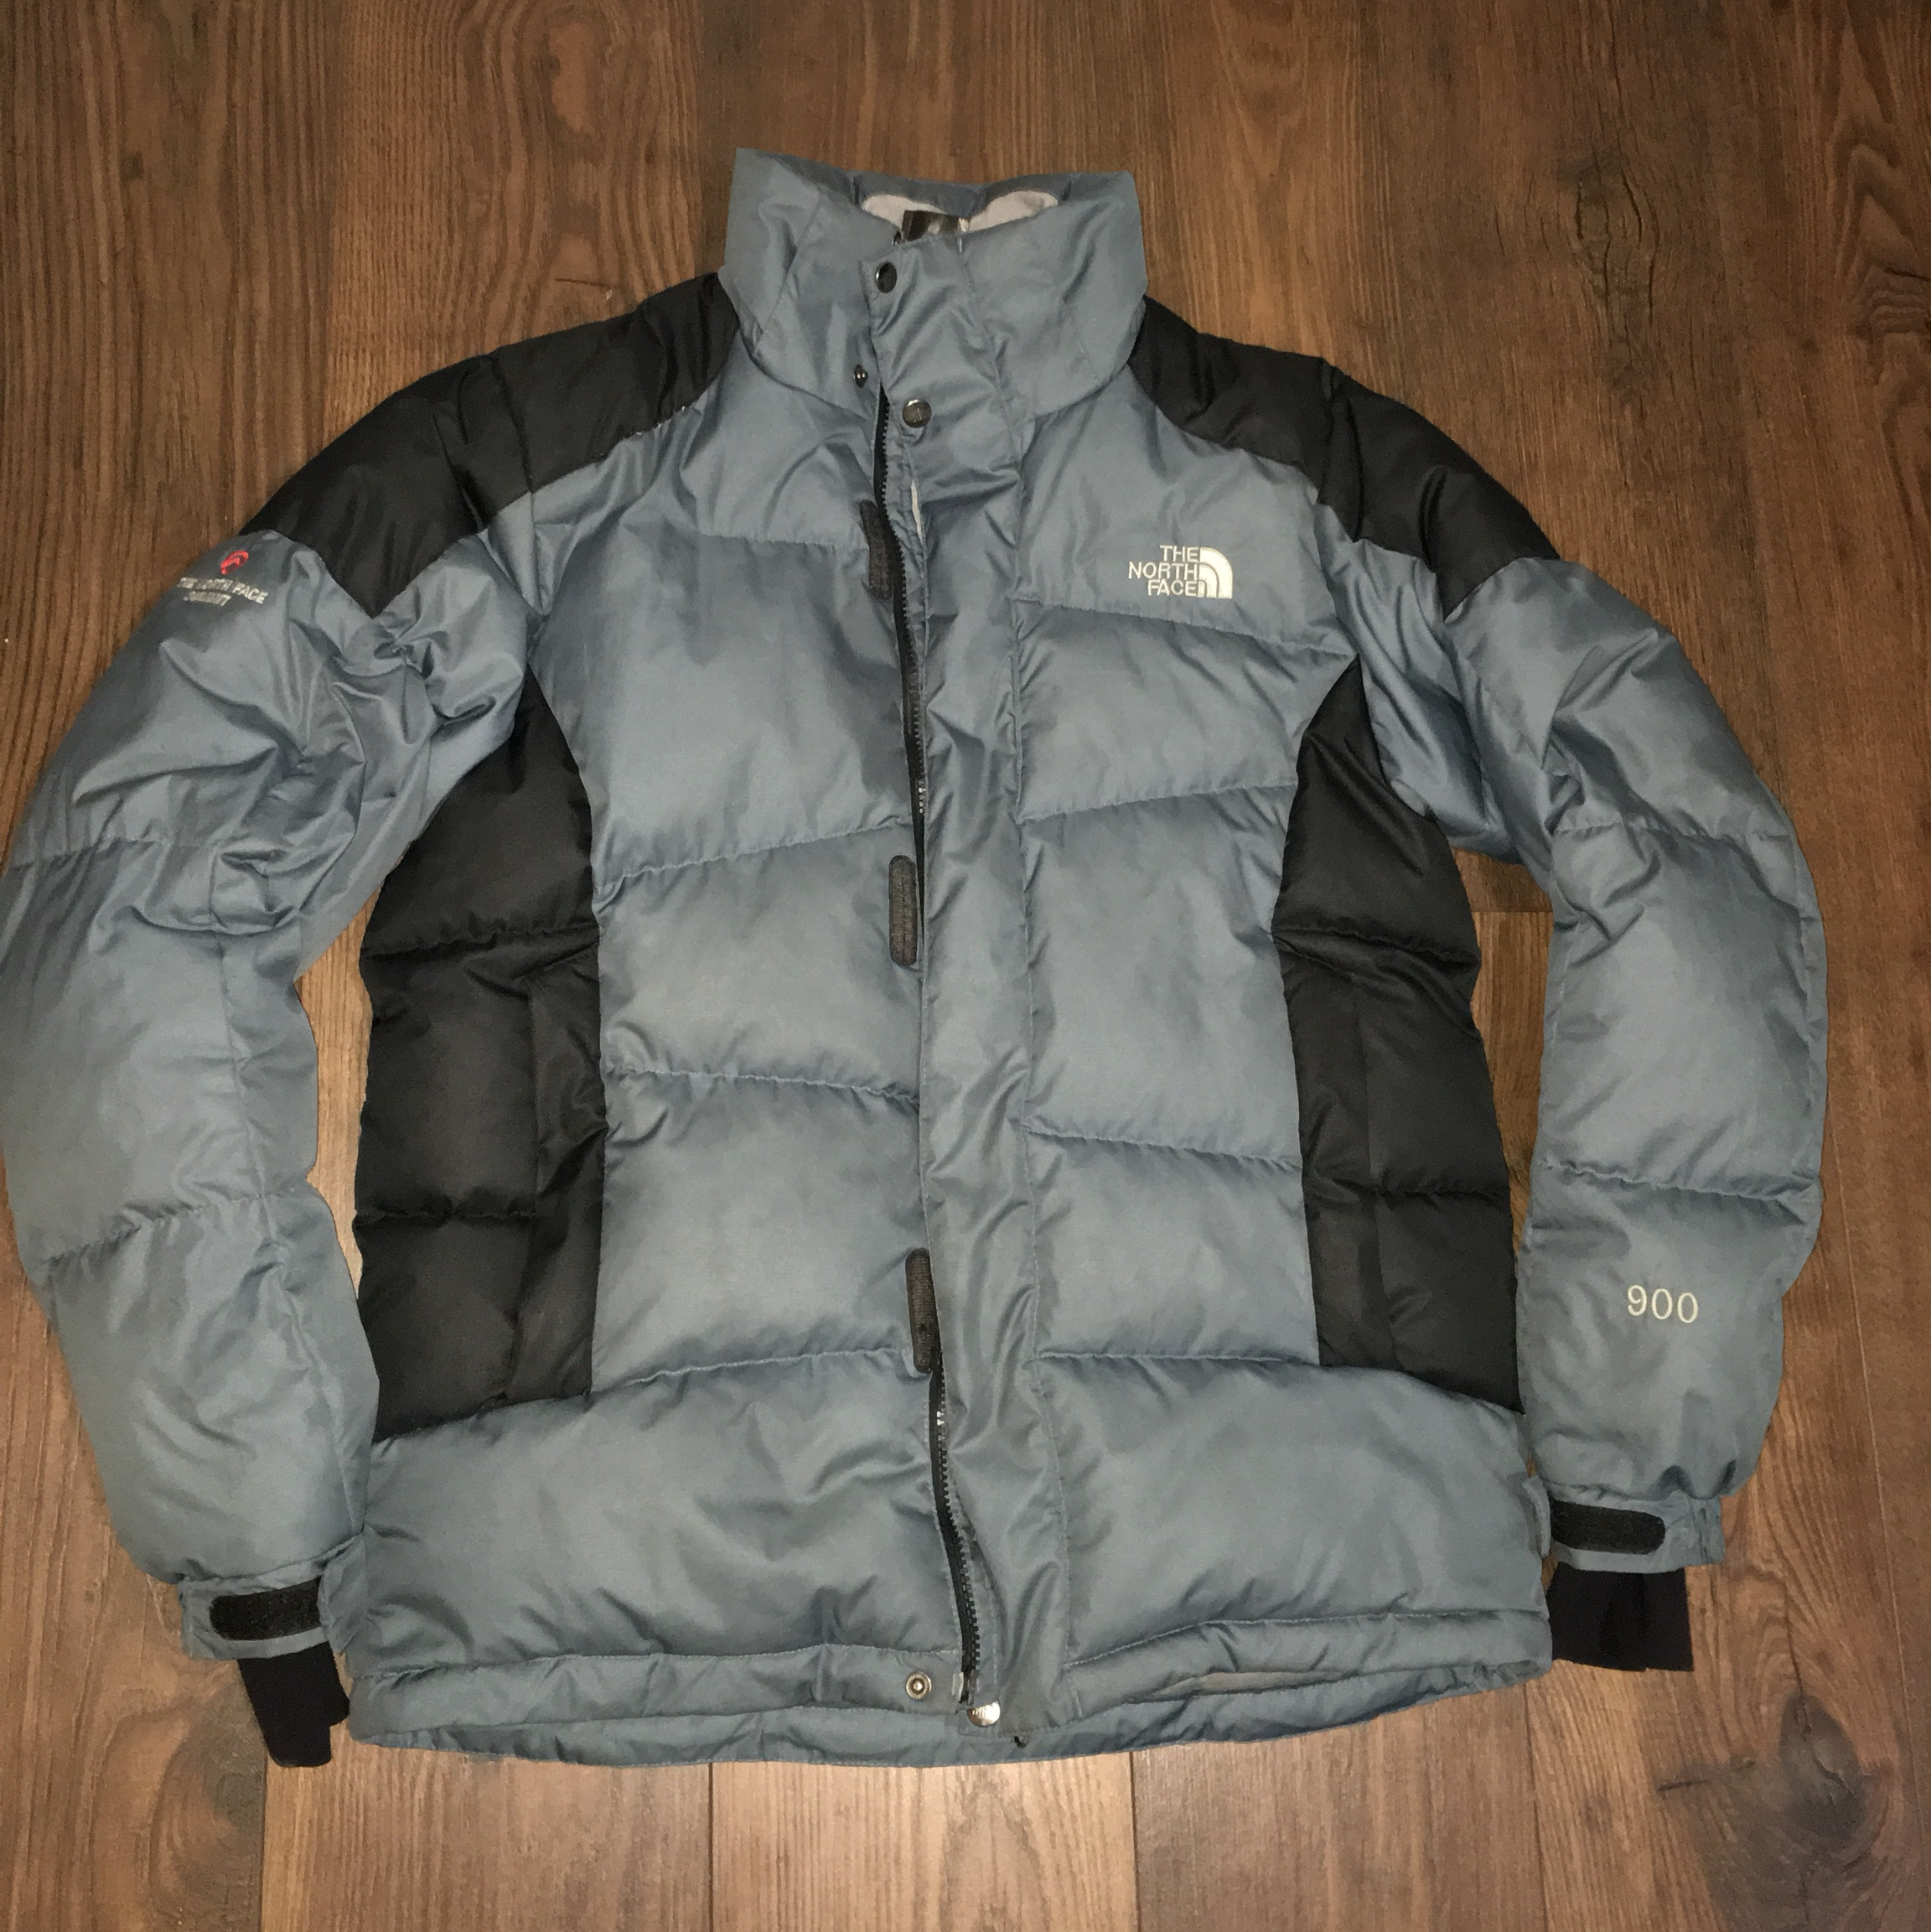 938d4f494 TNF The North Face puffer jacket 900 fill in... - Depop